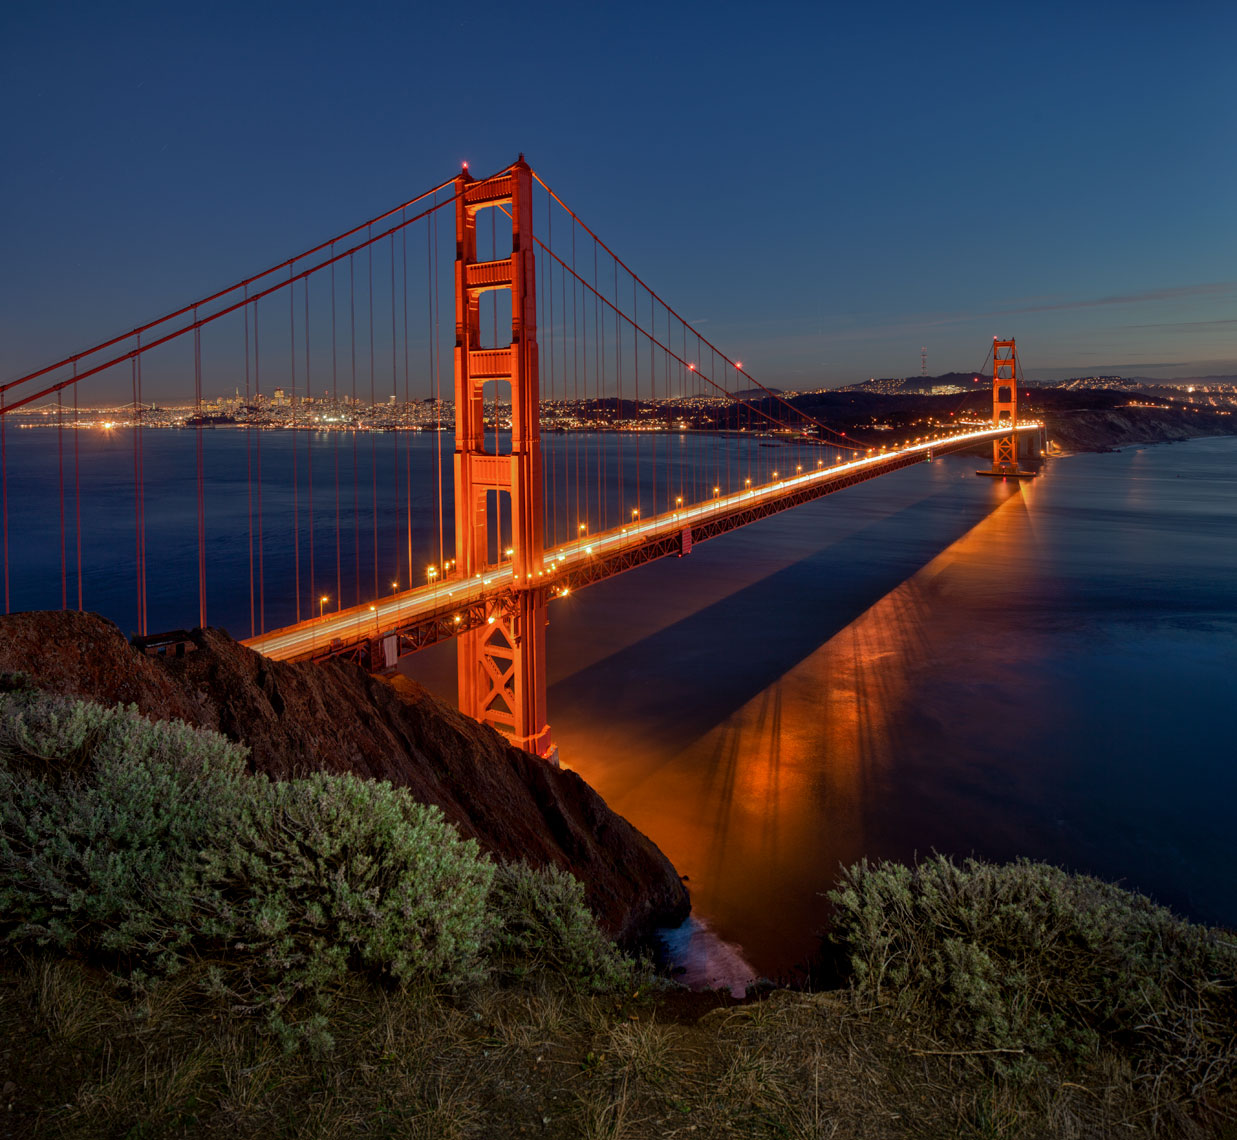 Golden Gate Bridge evening San Francisco,  cities, bridges,  urban, transportation, west coast, California